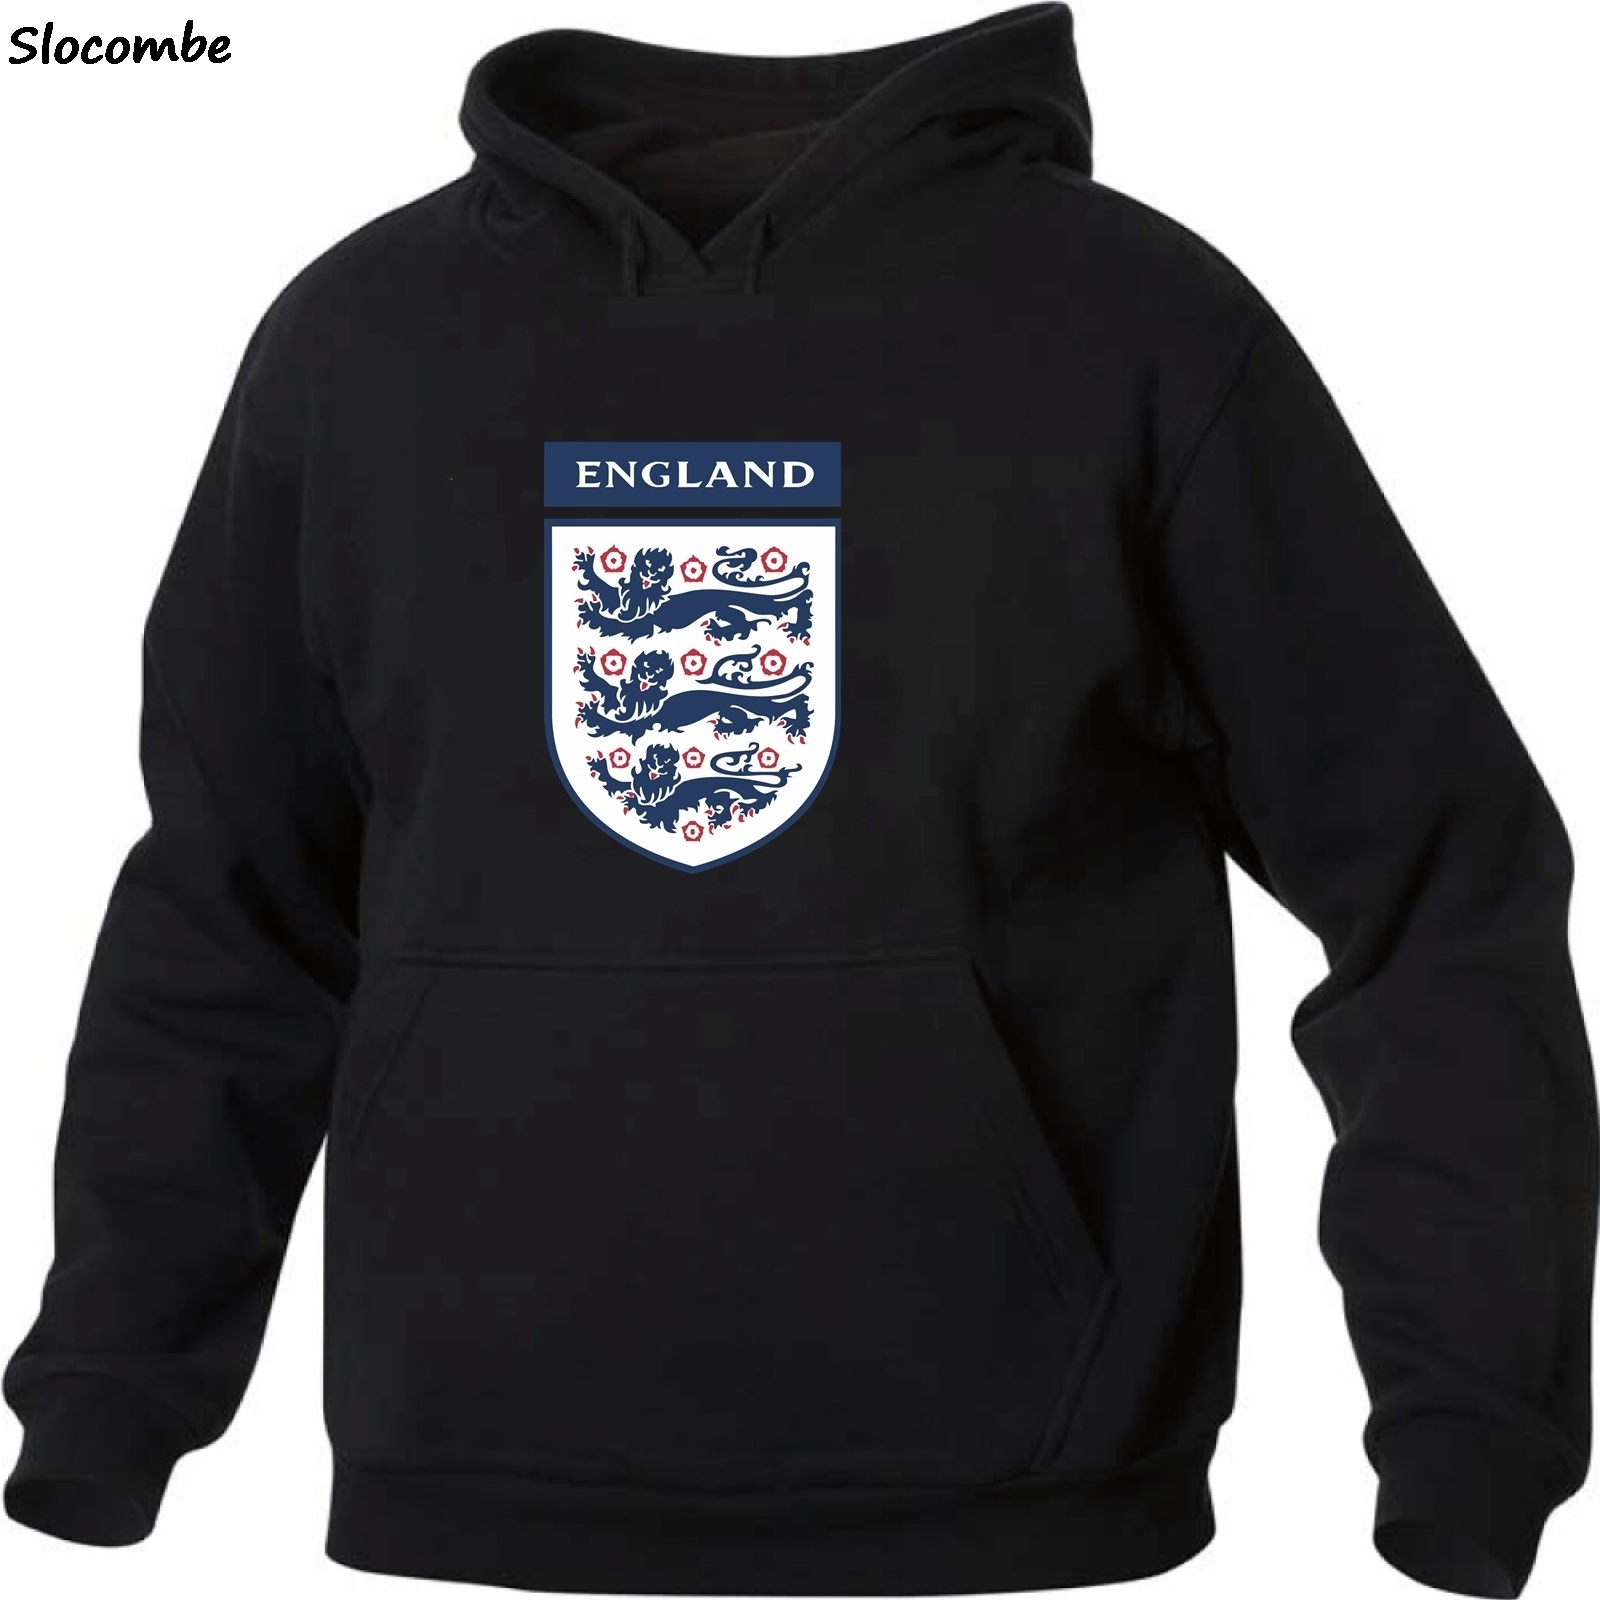 51d0c84b5c568 Buy custom soccer sweatshirts and get free shipping on AliExpress.com